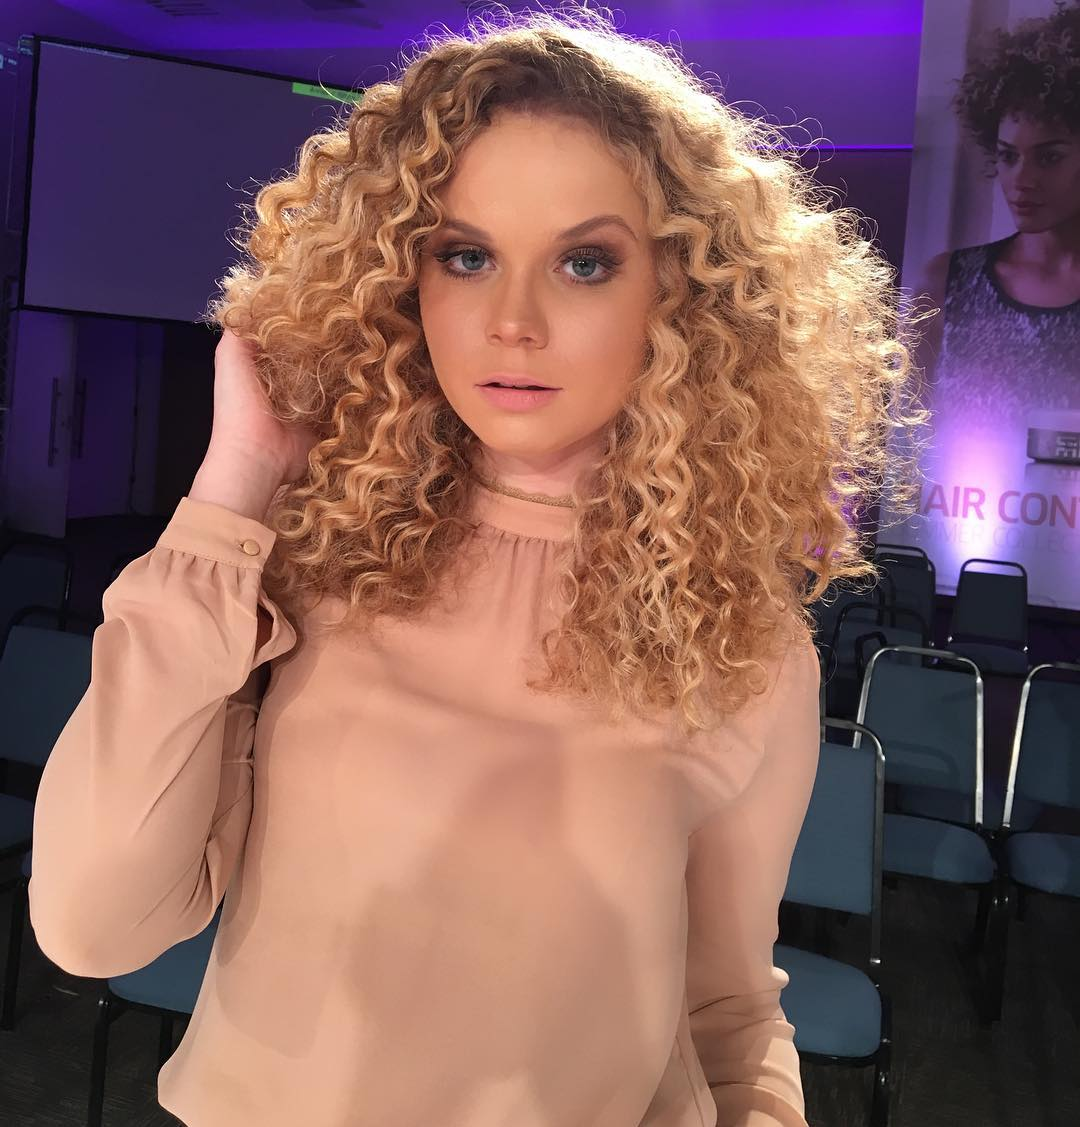 Long Layered Hair with Spiral Curls on Strawberry Blonde Hair with Dark Roots